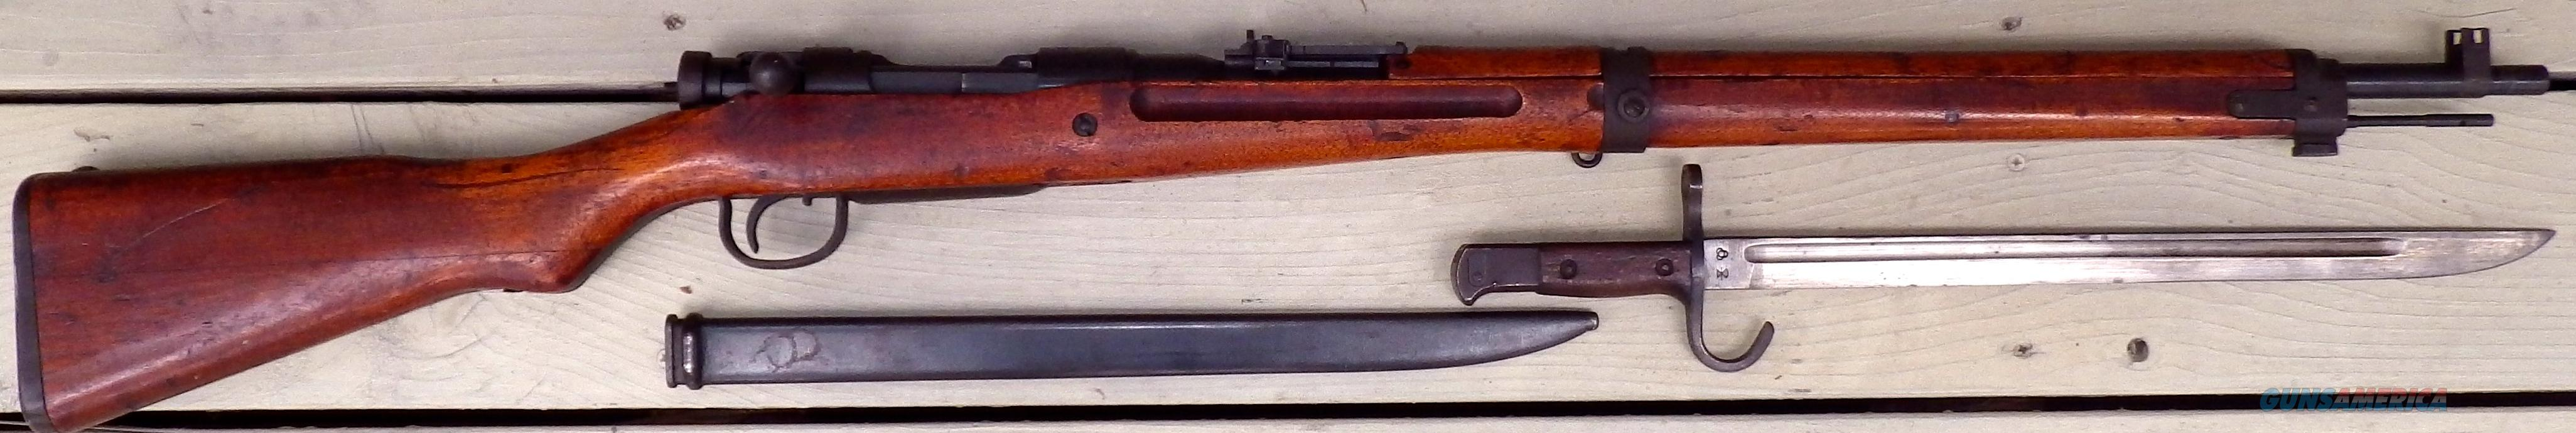 Japanese 99 with aircraft sight and bayonet  Guns > Rifles > Military Misc. Rifles Non-US > Other